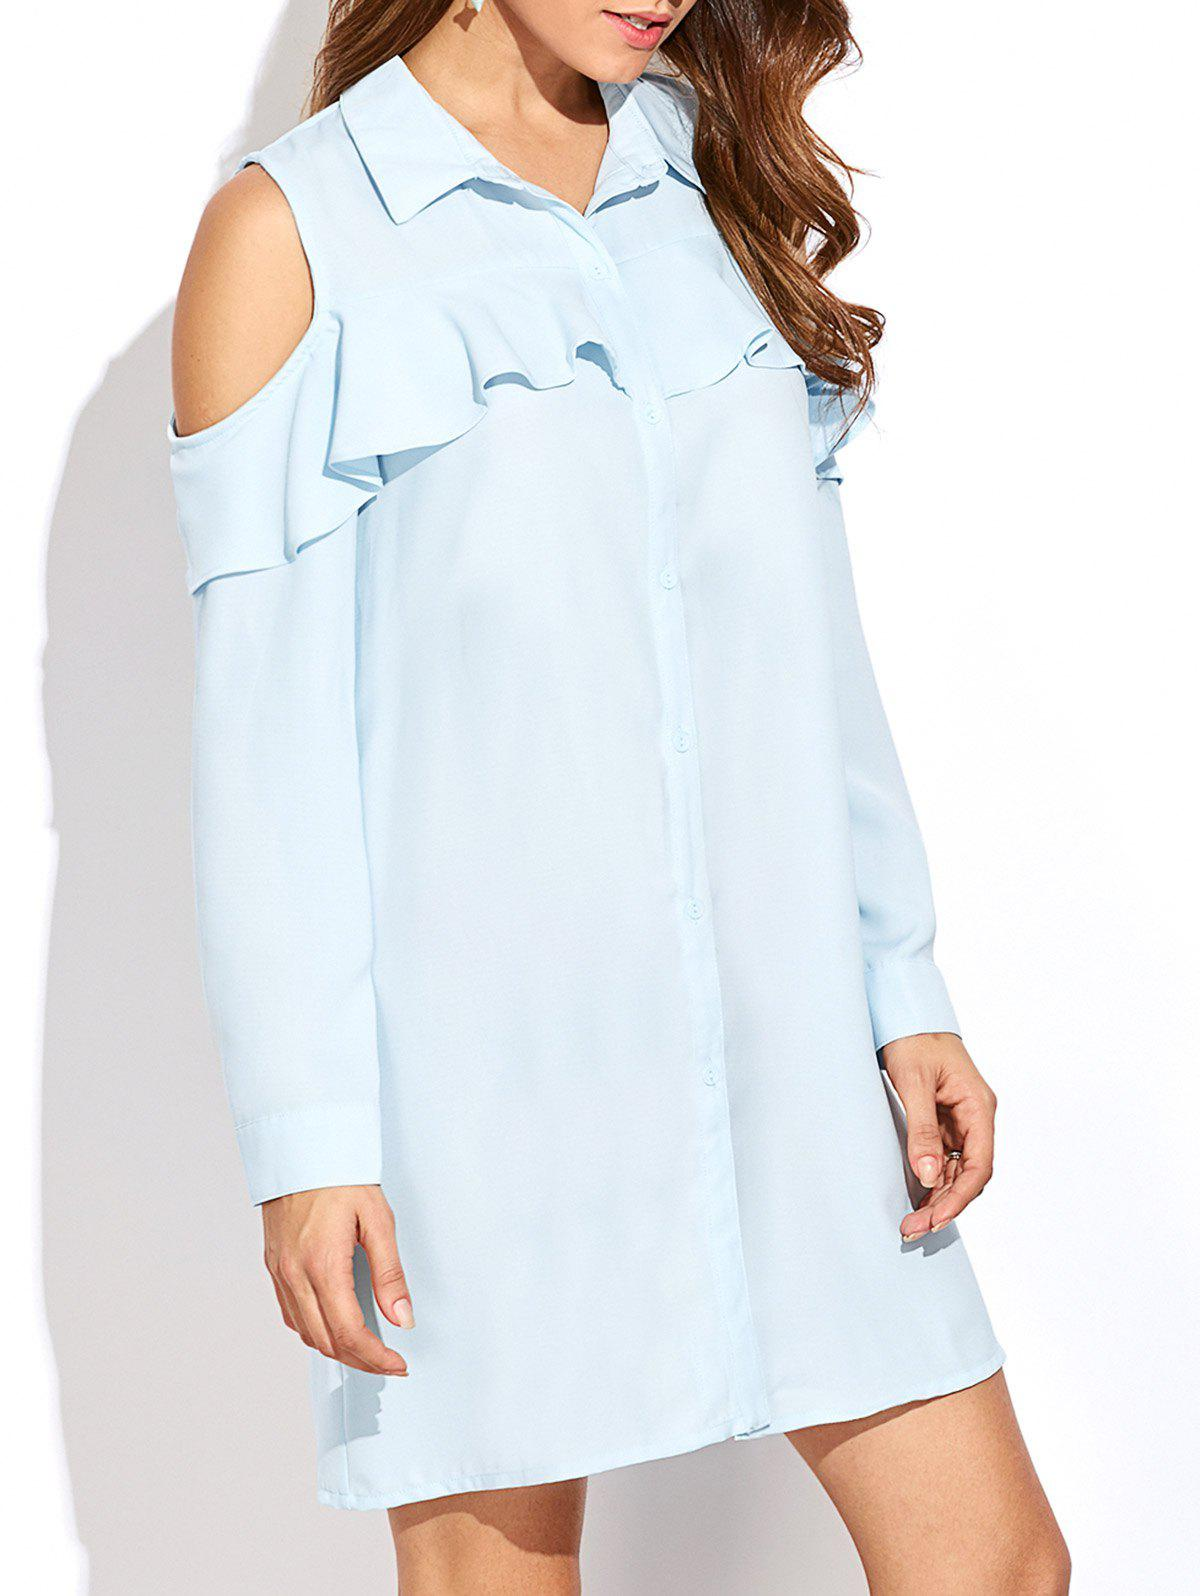 Unique Cold Shoulder Shirt Tunic Dress With Frill